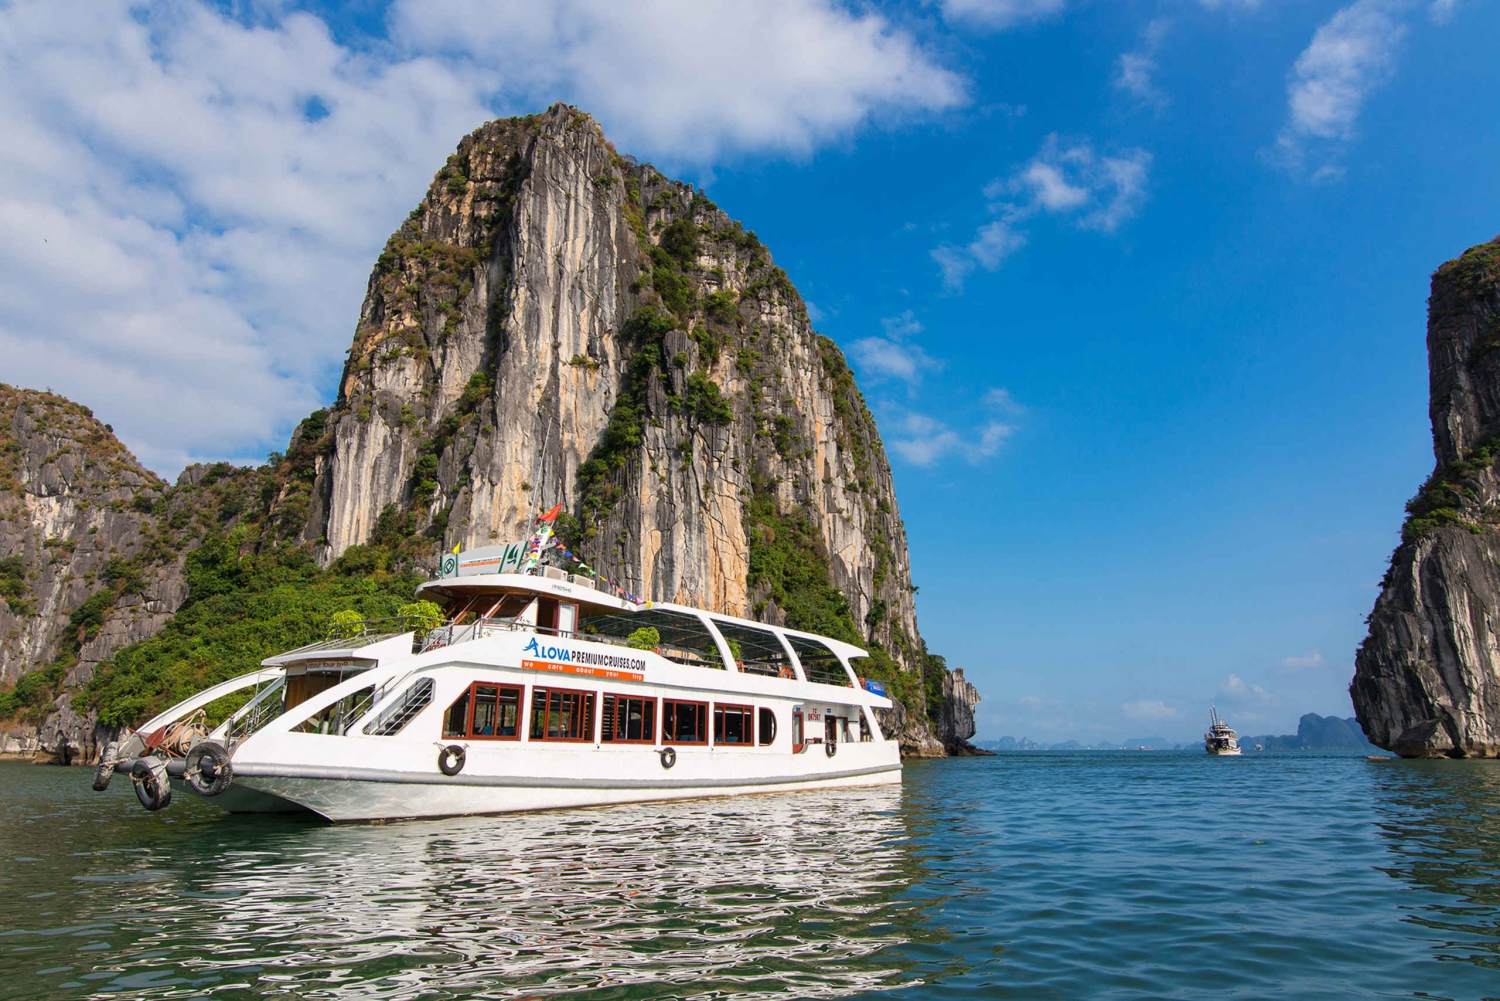 Halong Bay: Full Day Alova Premium Cruise from Hanoi